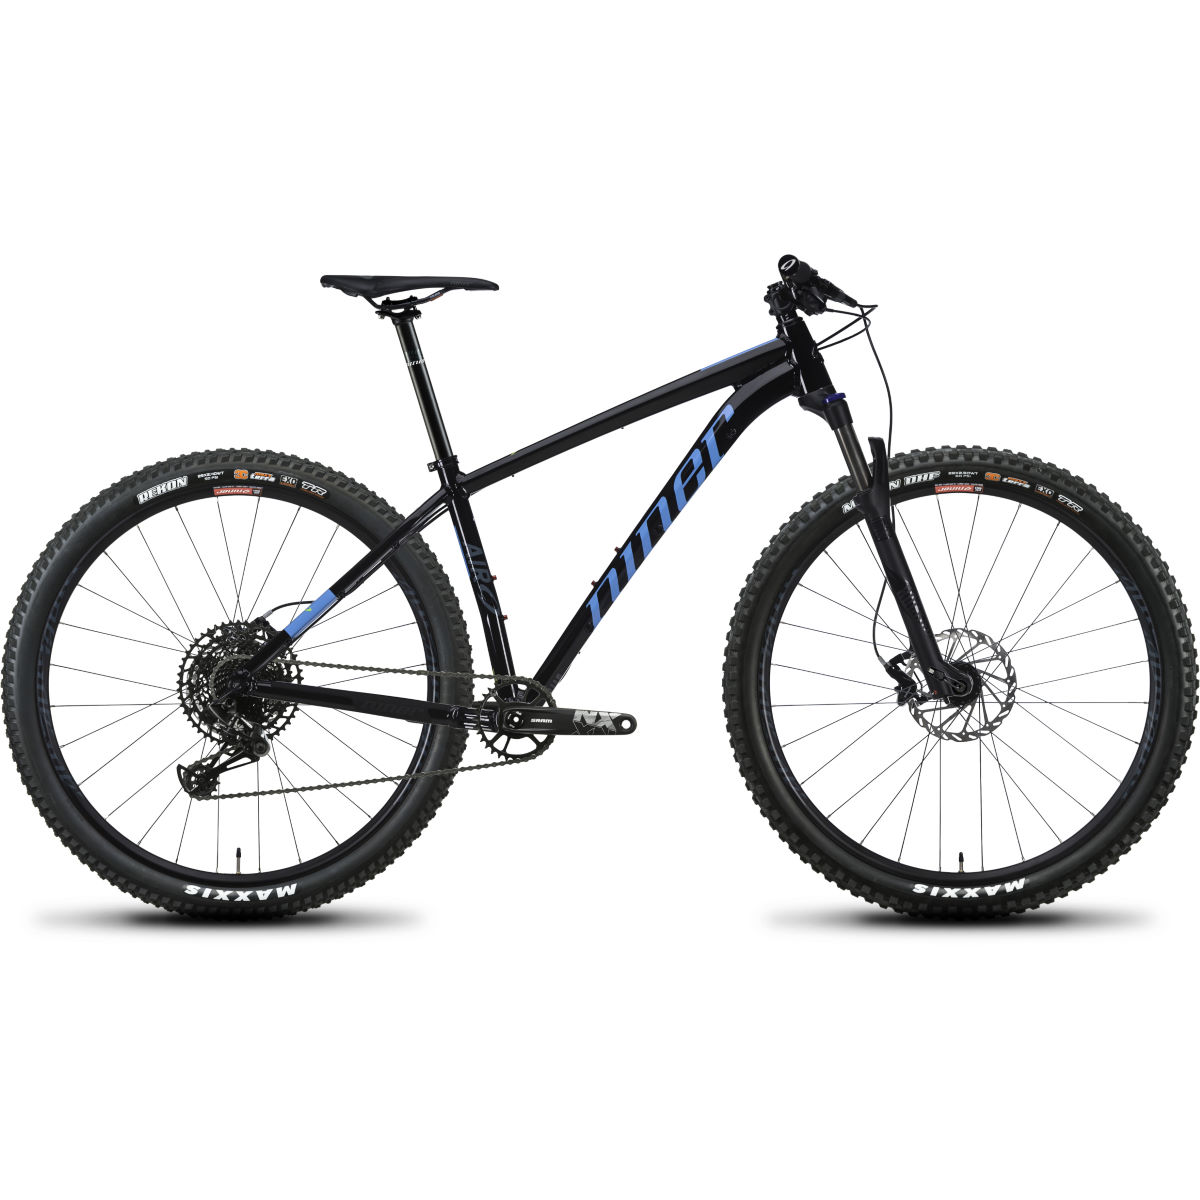 Niner AIR 9 2-Star Hardtail Bike - Bicicletas de MTB rígidas